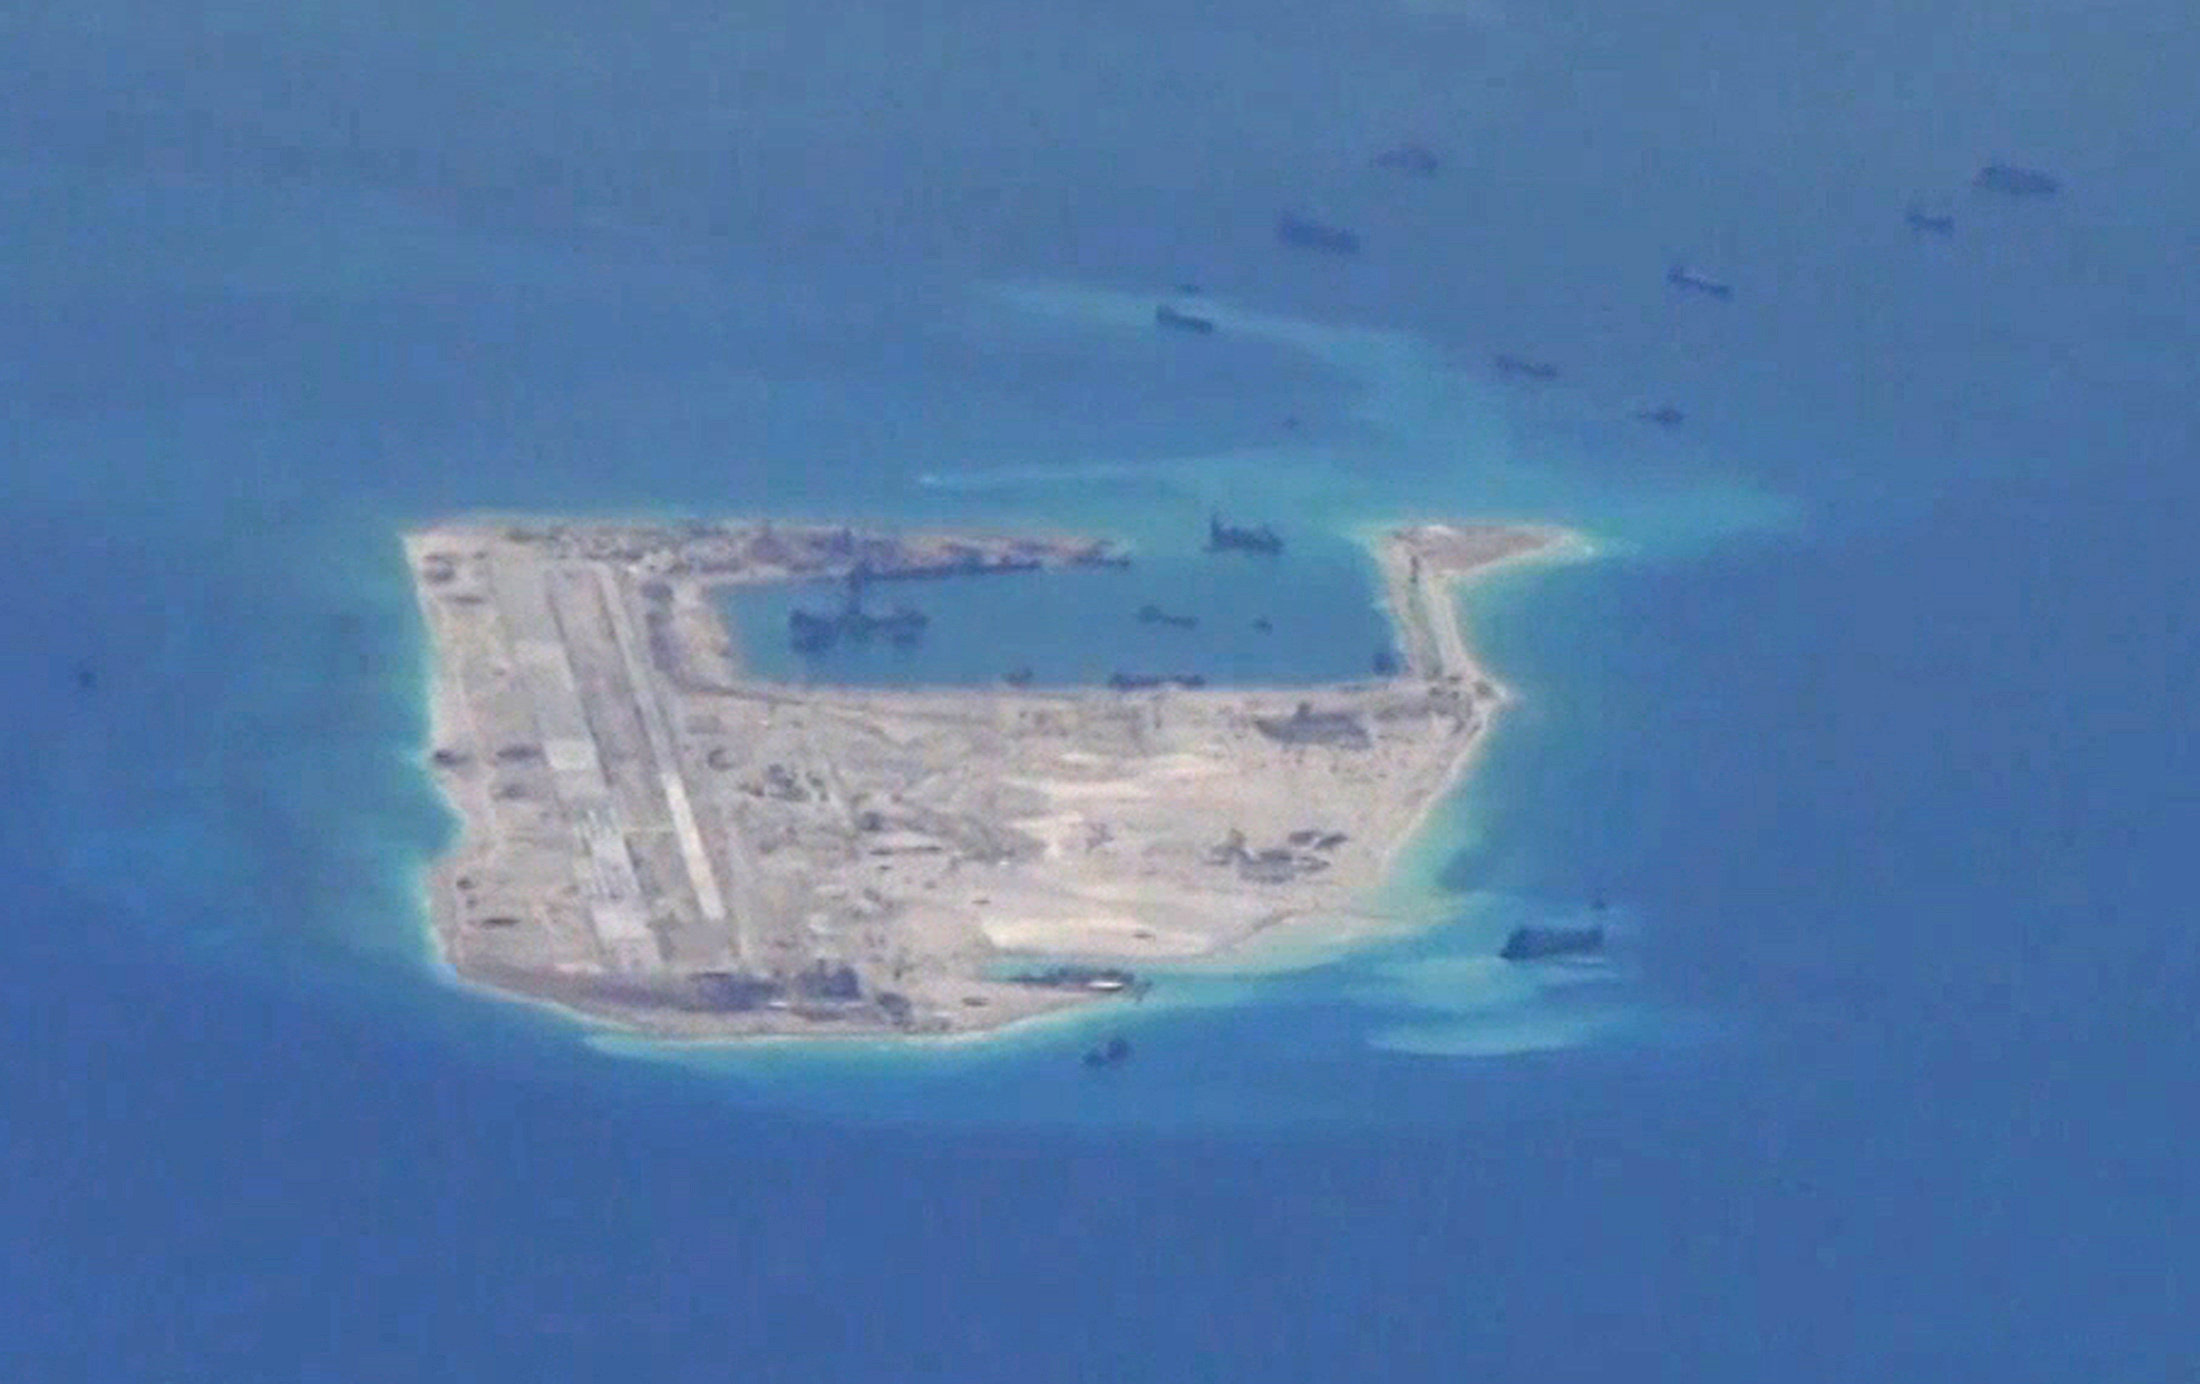 US Excludes China From Military Drill Over South China Sea Actions